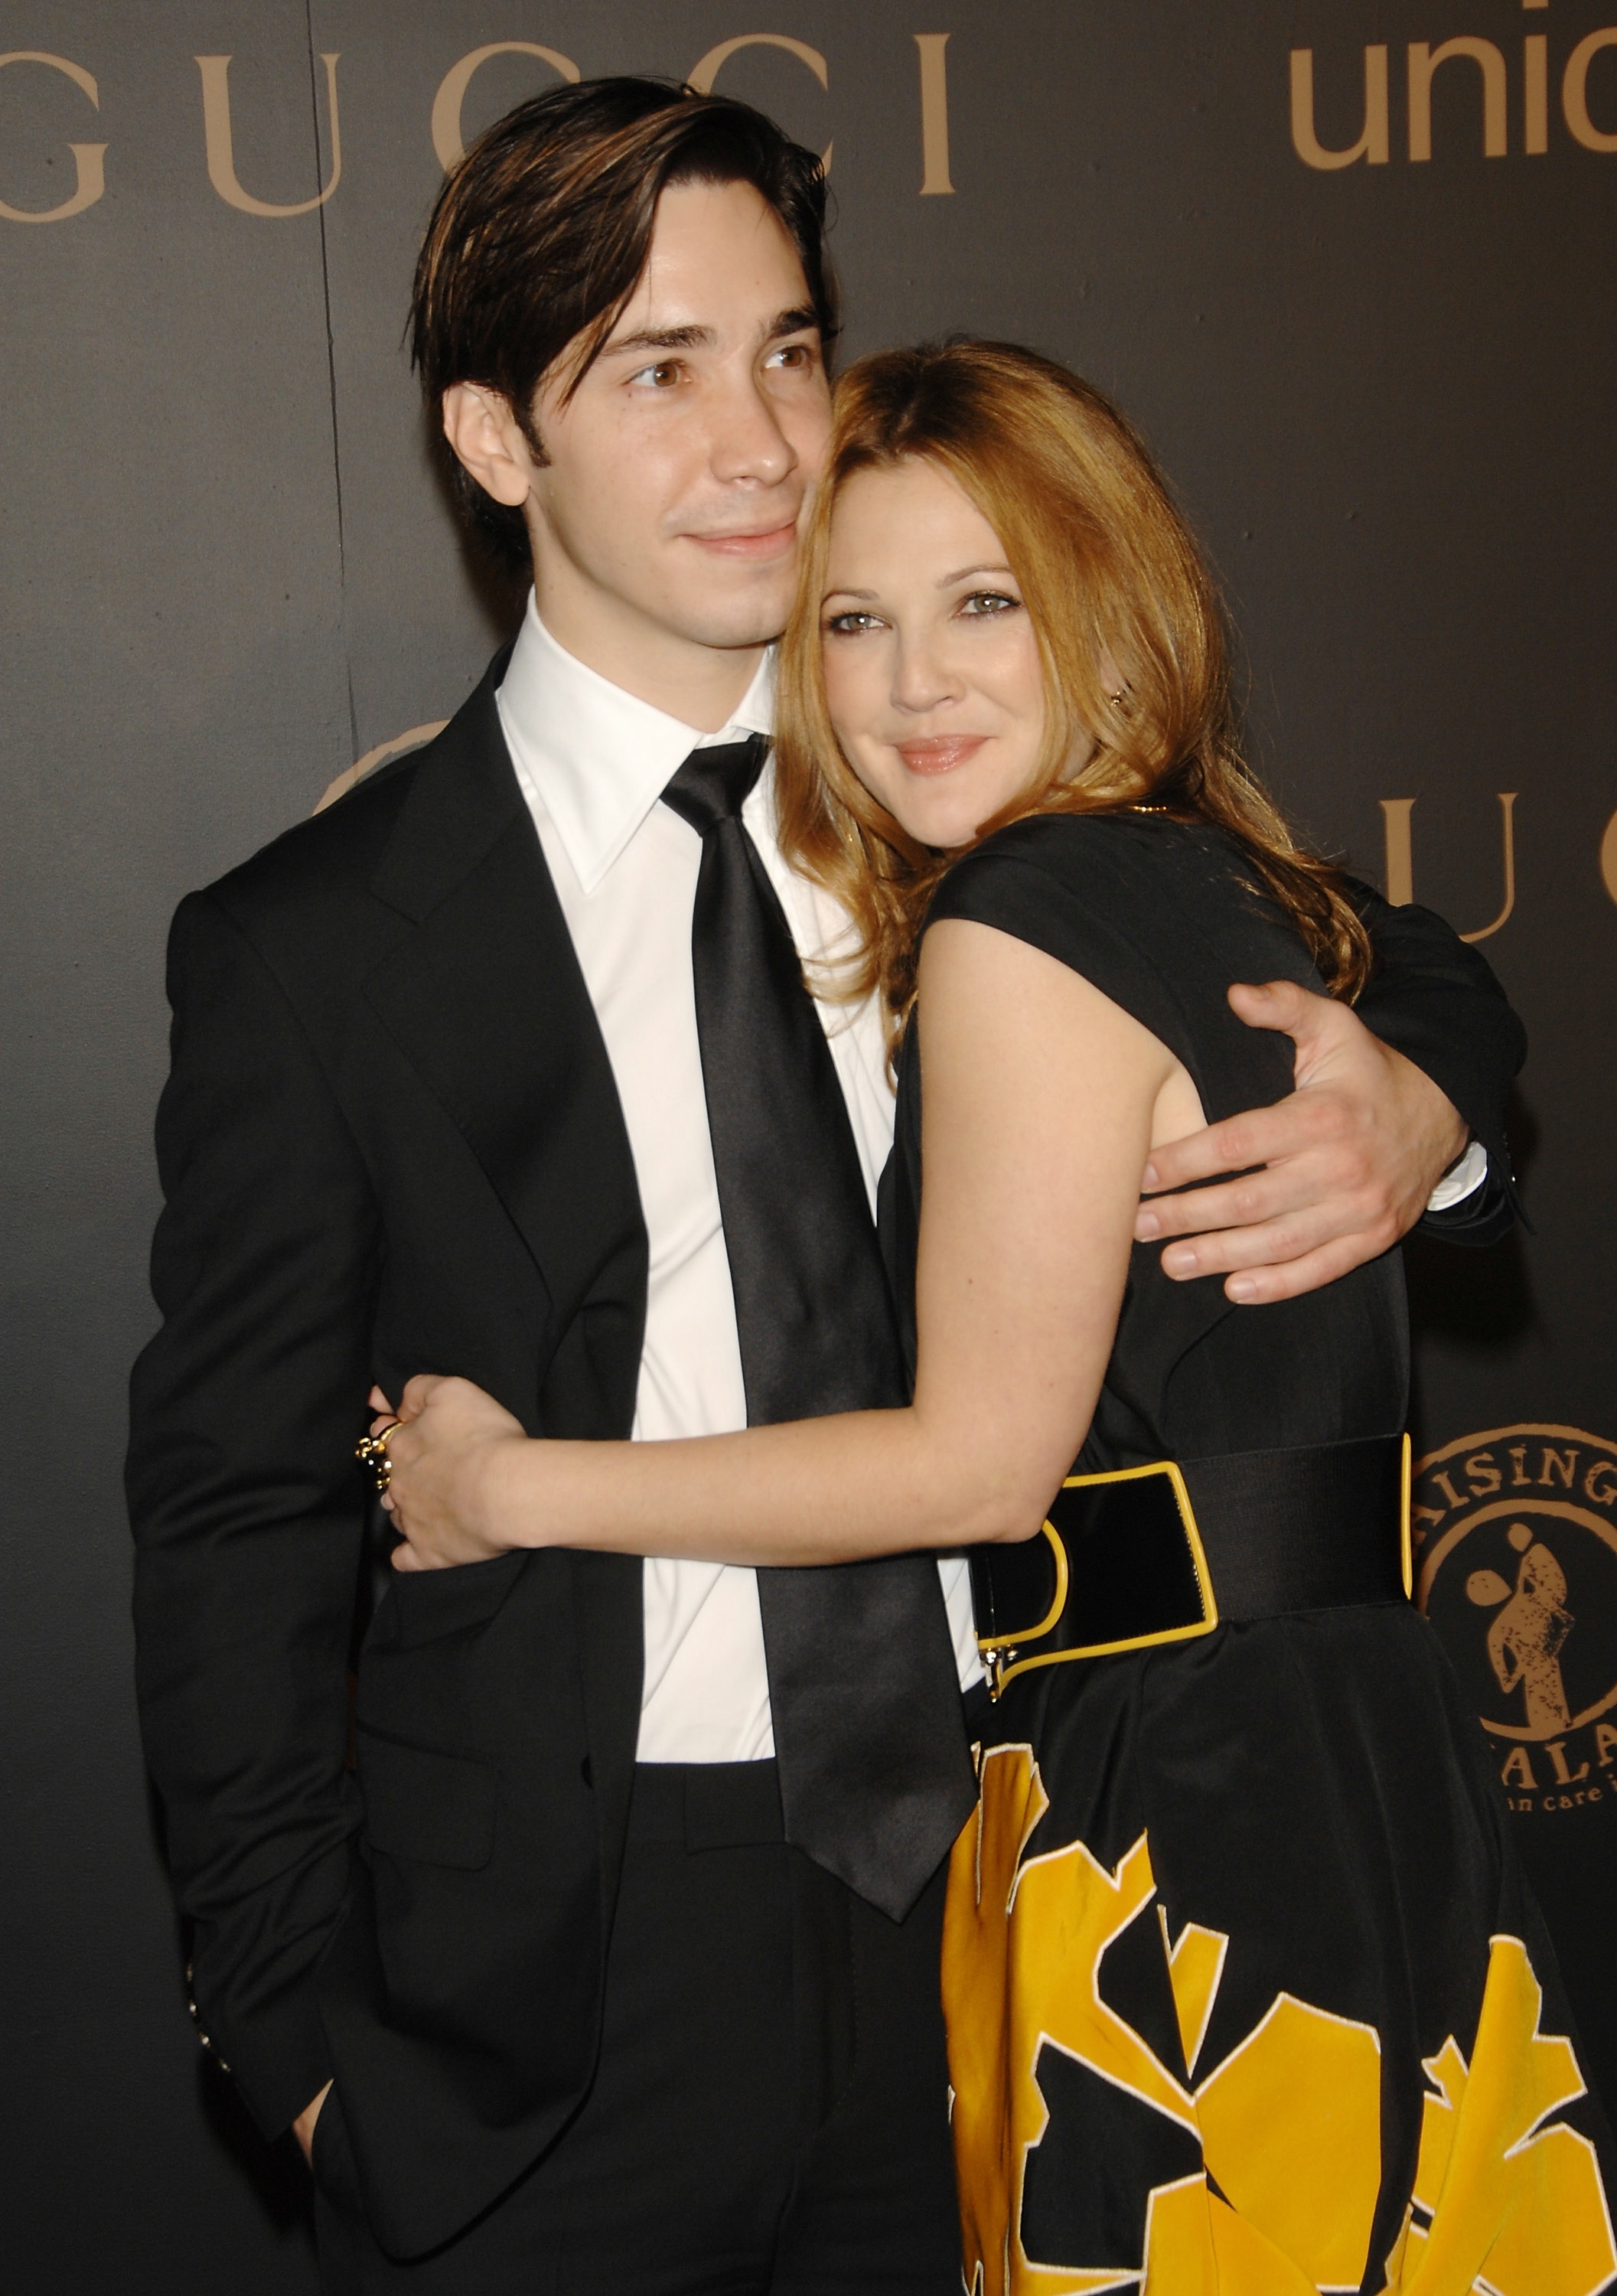 080206045215Drew Barrymore and Justin Long